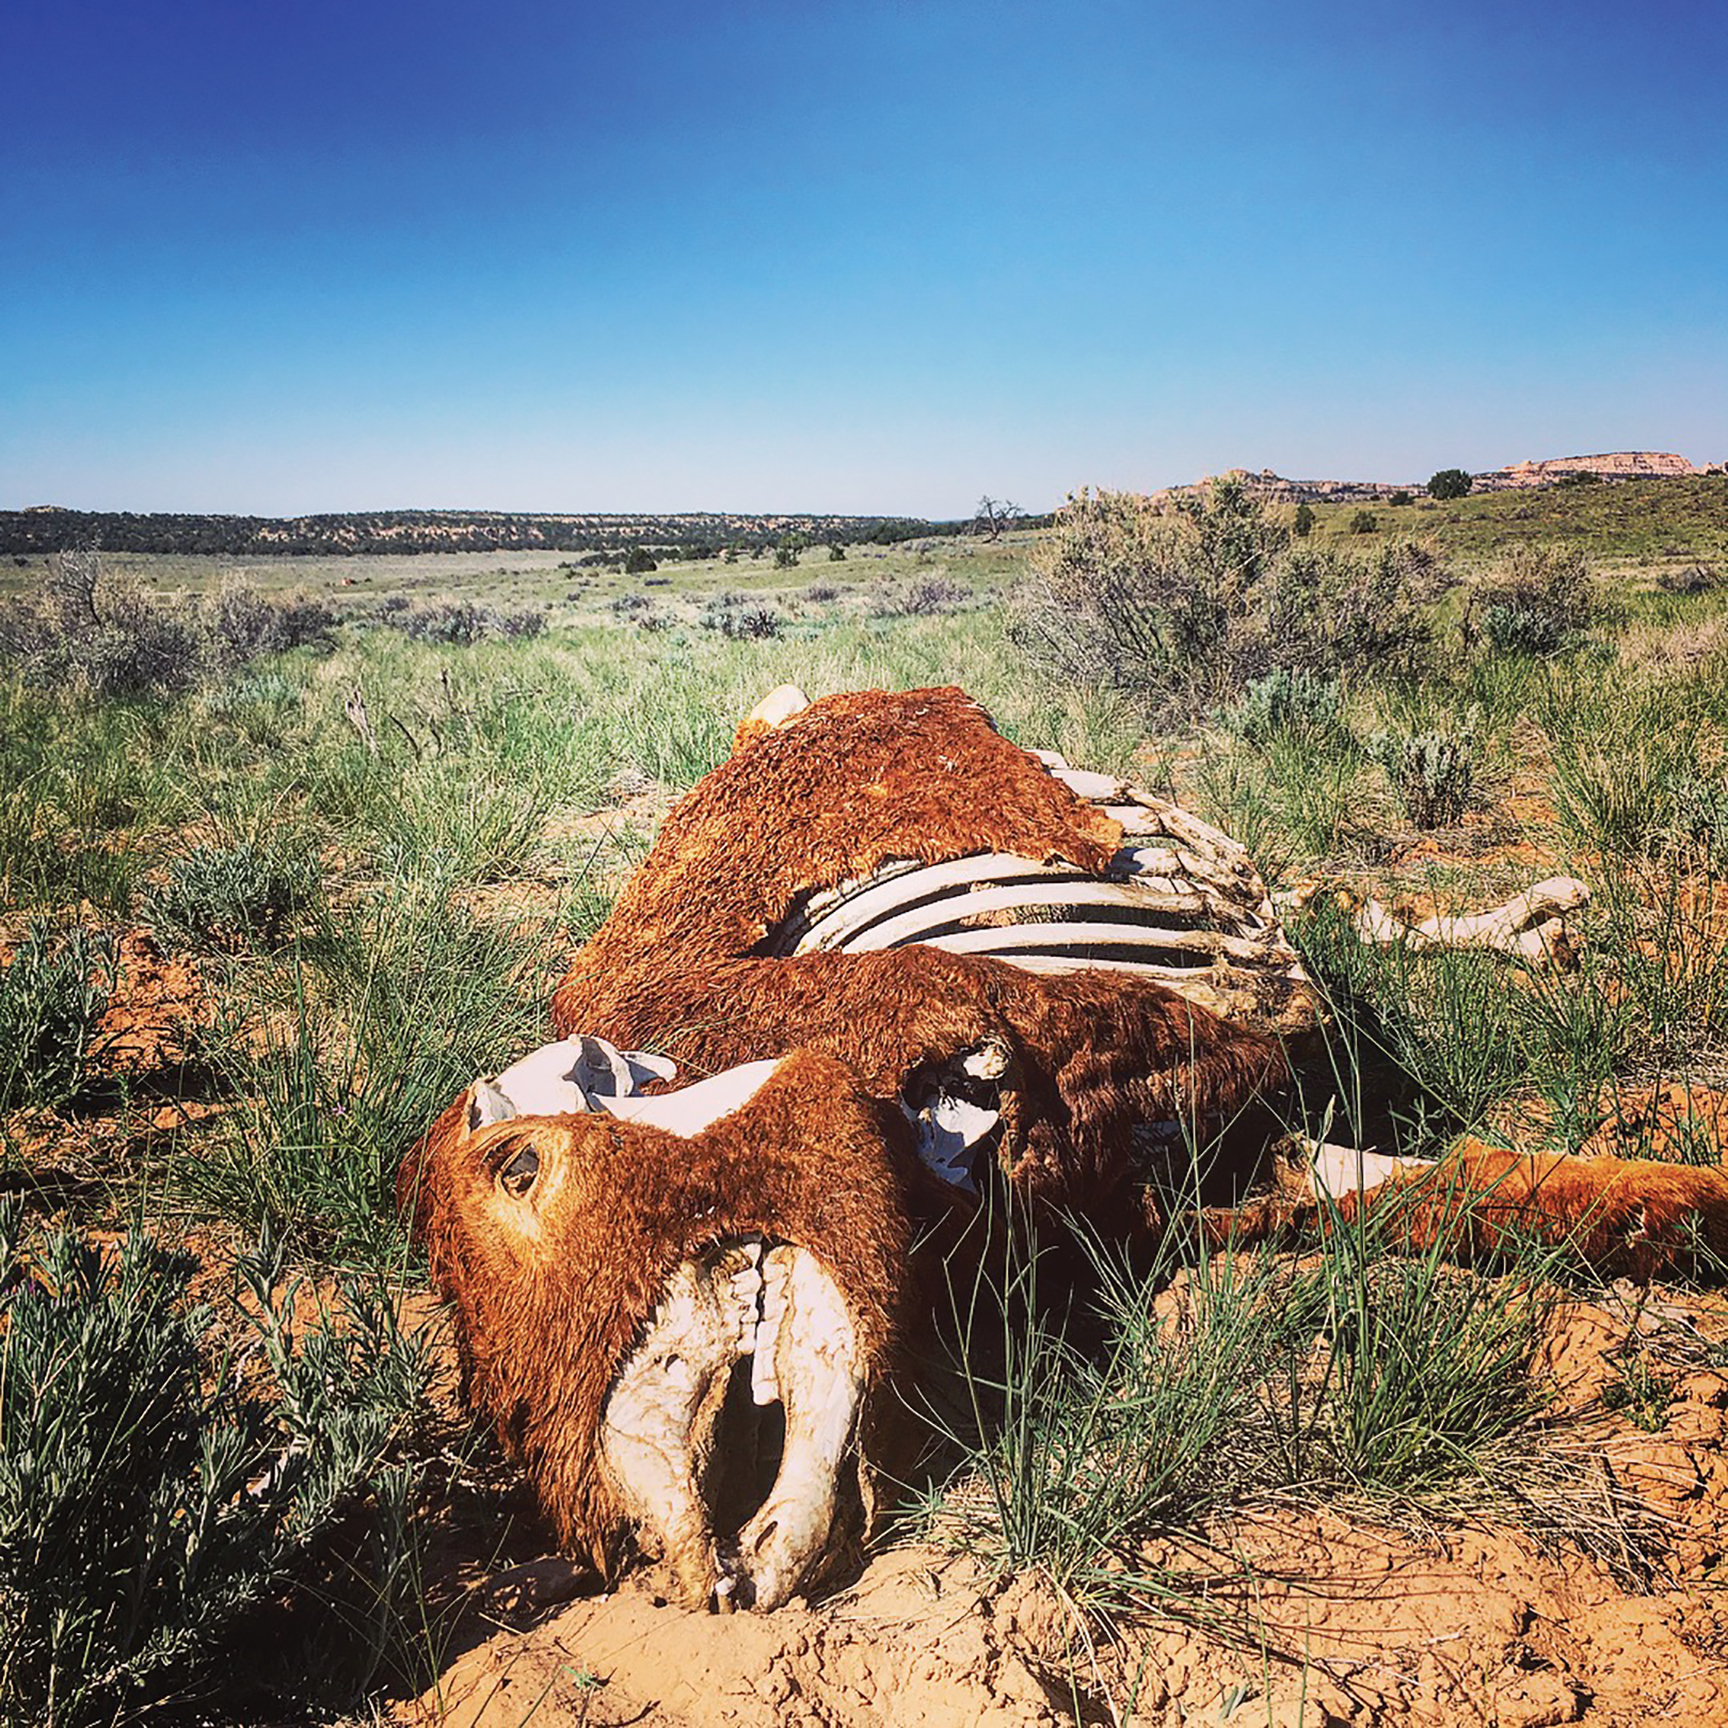 A cow carcass near a scarce water supply. Photo by Ashley Carruth